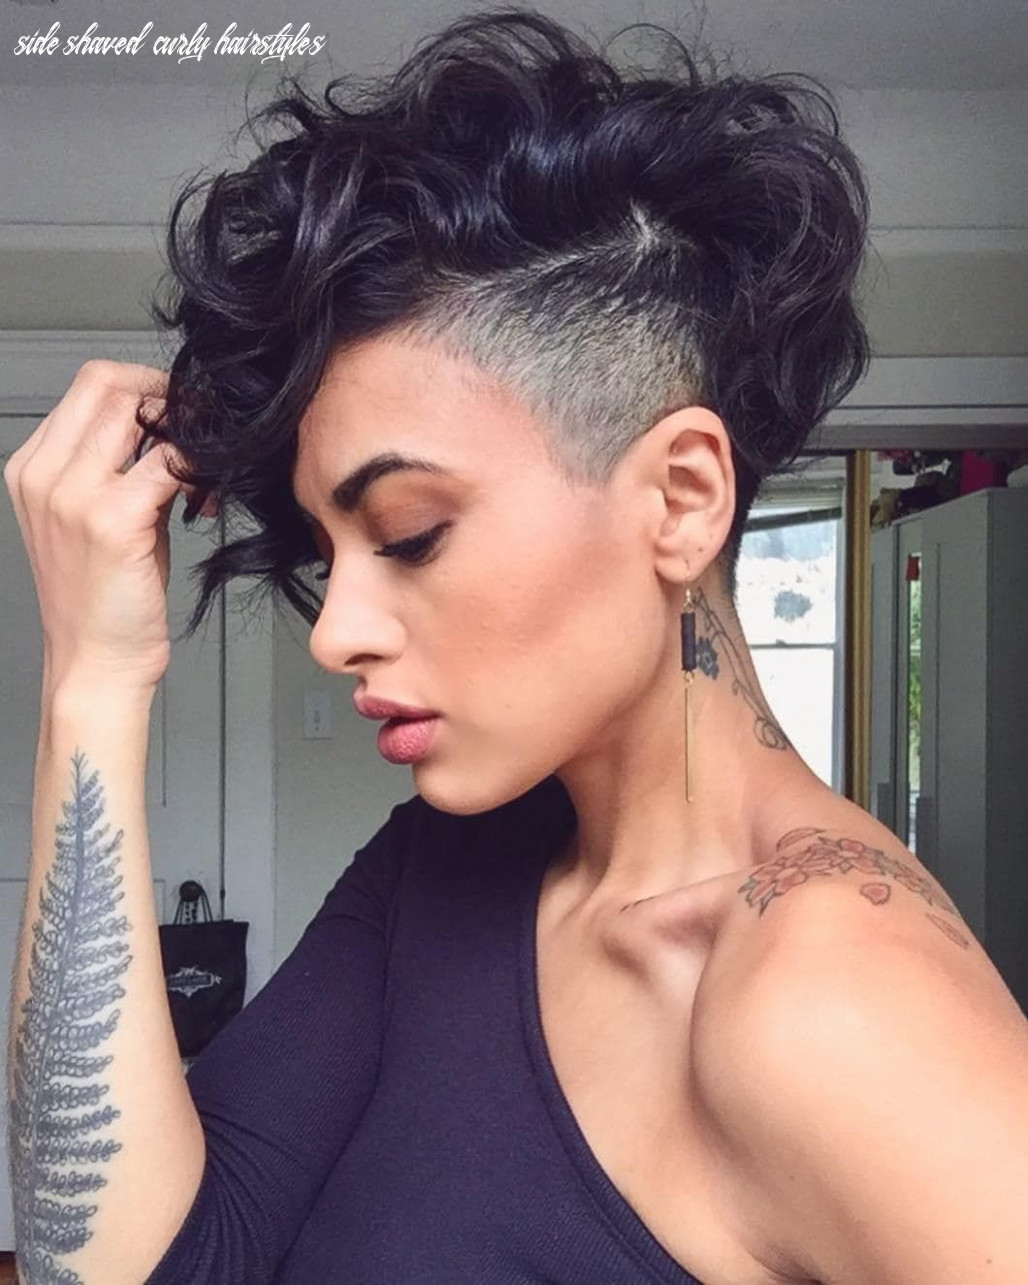 Pin on haircuts side shaved curly hairstyles